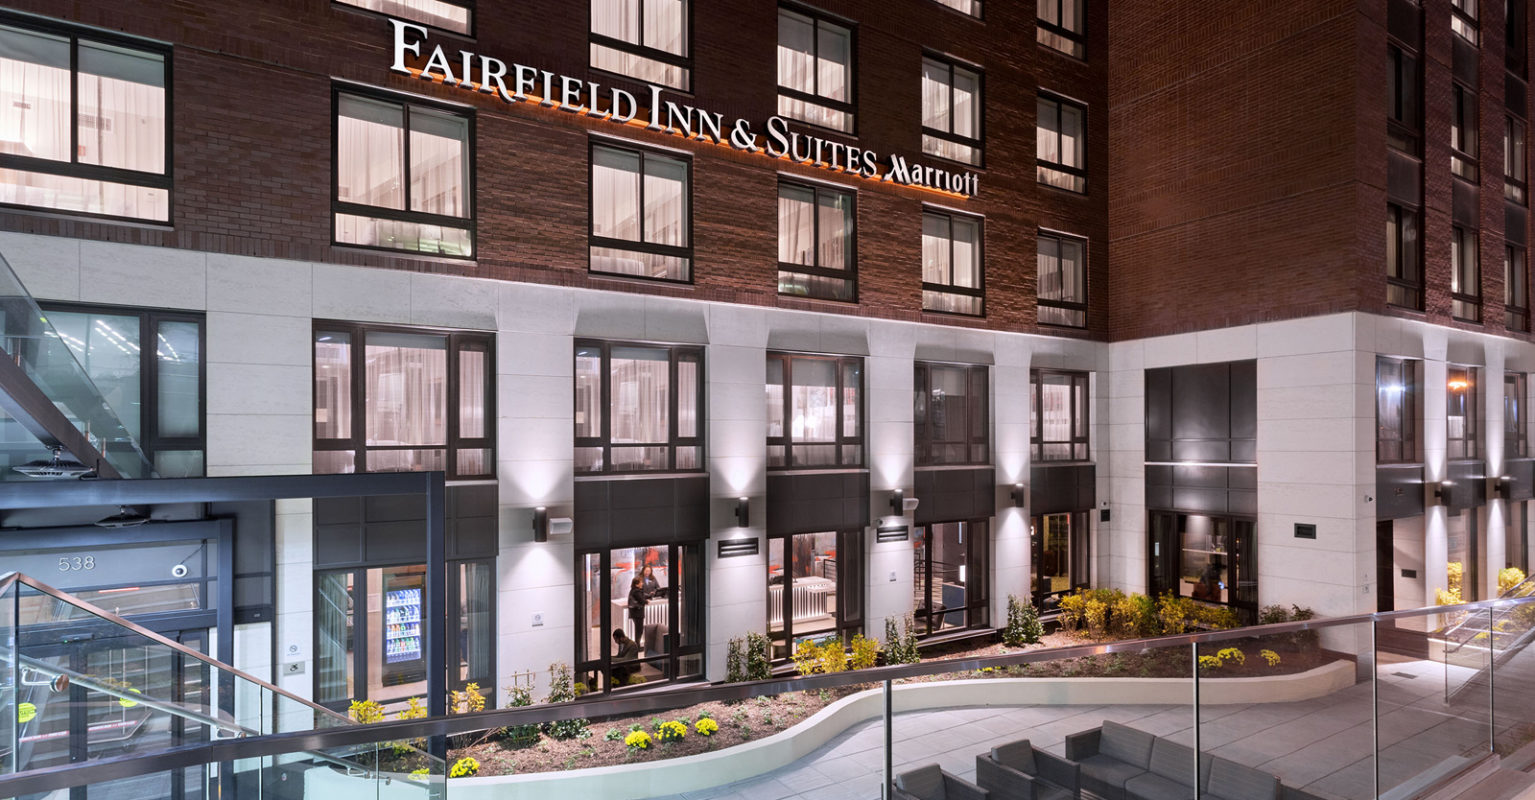 Fairfield Inn & Suites New York Manhattan/Central Park exterior